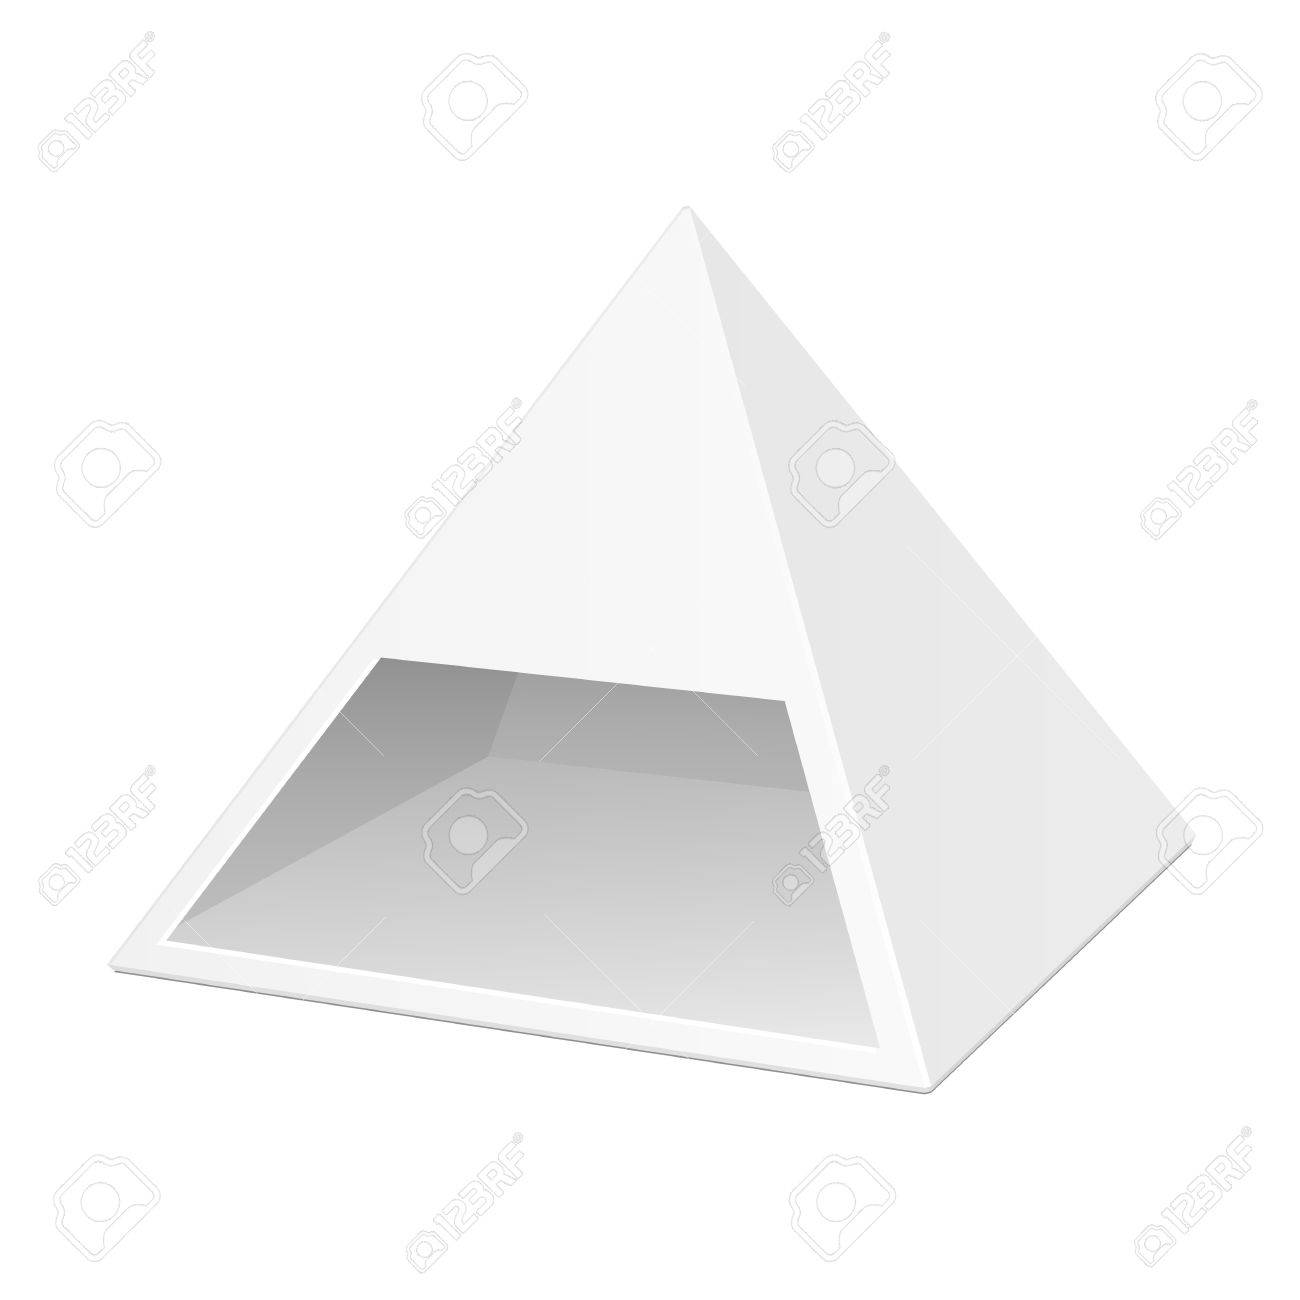 White cardboard pyramid triangle box packaging for food gift or stockfoto white cardboard pyramid triangle box packaging for food gift or other products illustration isolated on white background mock up template maxwellsz